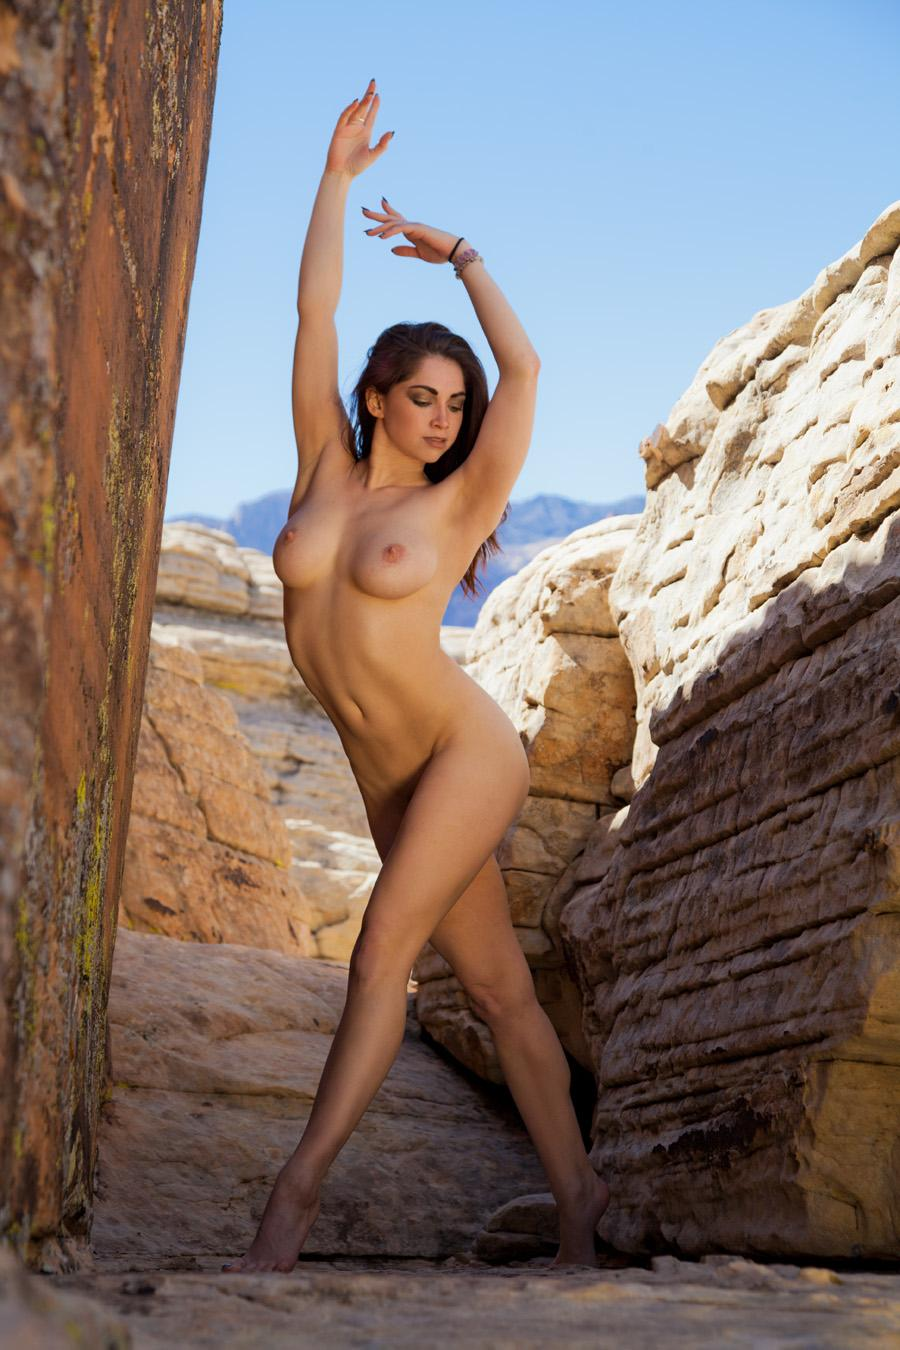 Anais on the Rocks Anais outside of Las Vegas.   #anais  #lasvegas  #redrocks  #nude  #outdoors